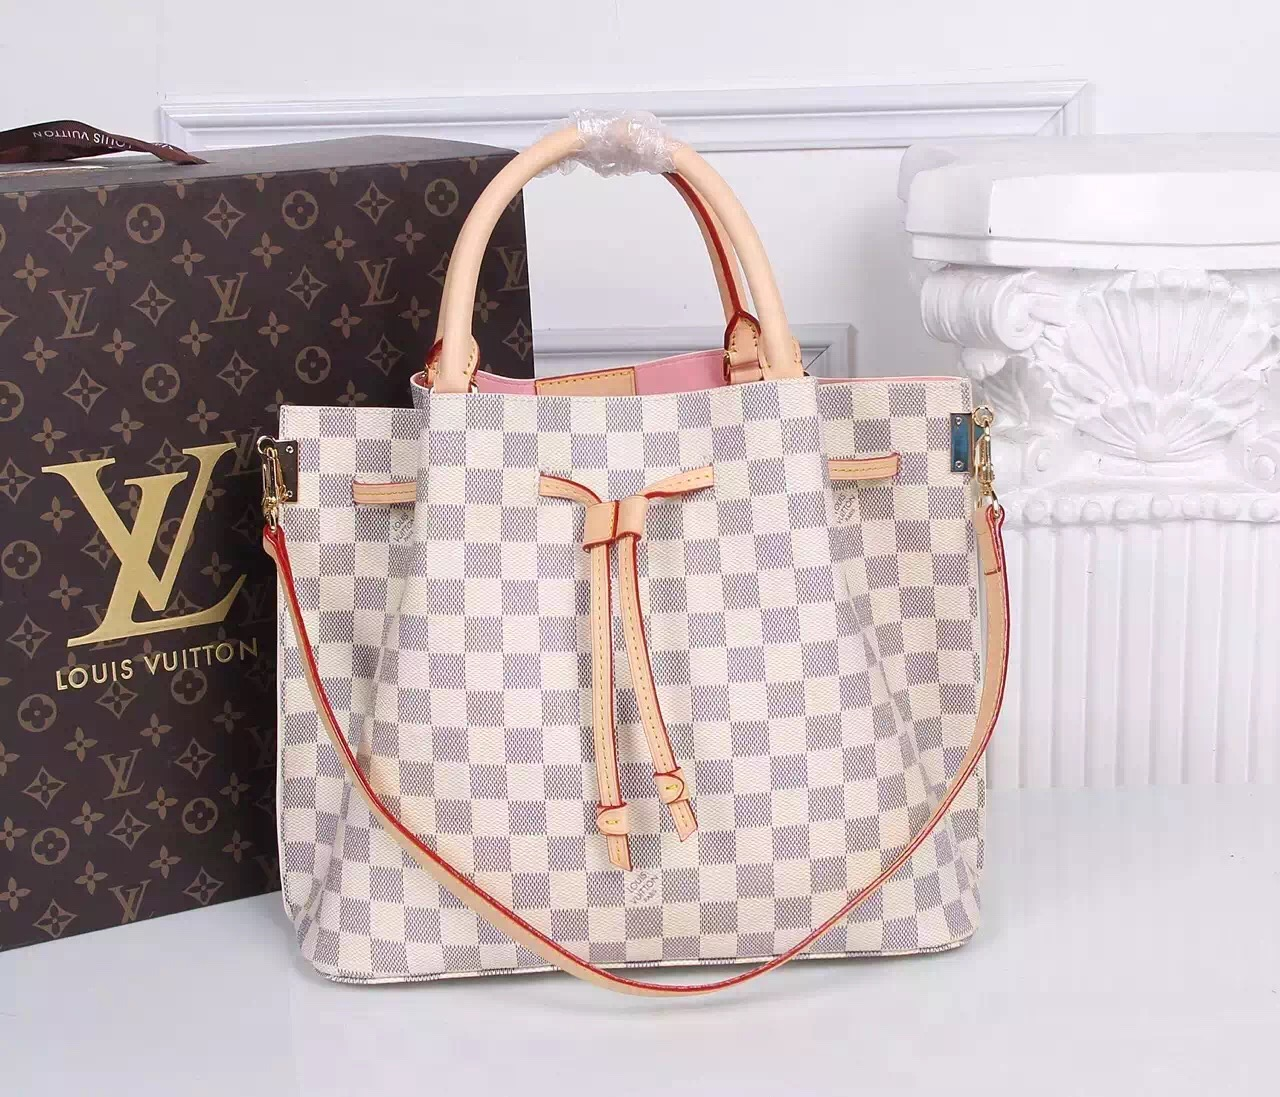 Louis Vuitton Damier Azur Canvas Shoulder Bag 41579